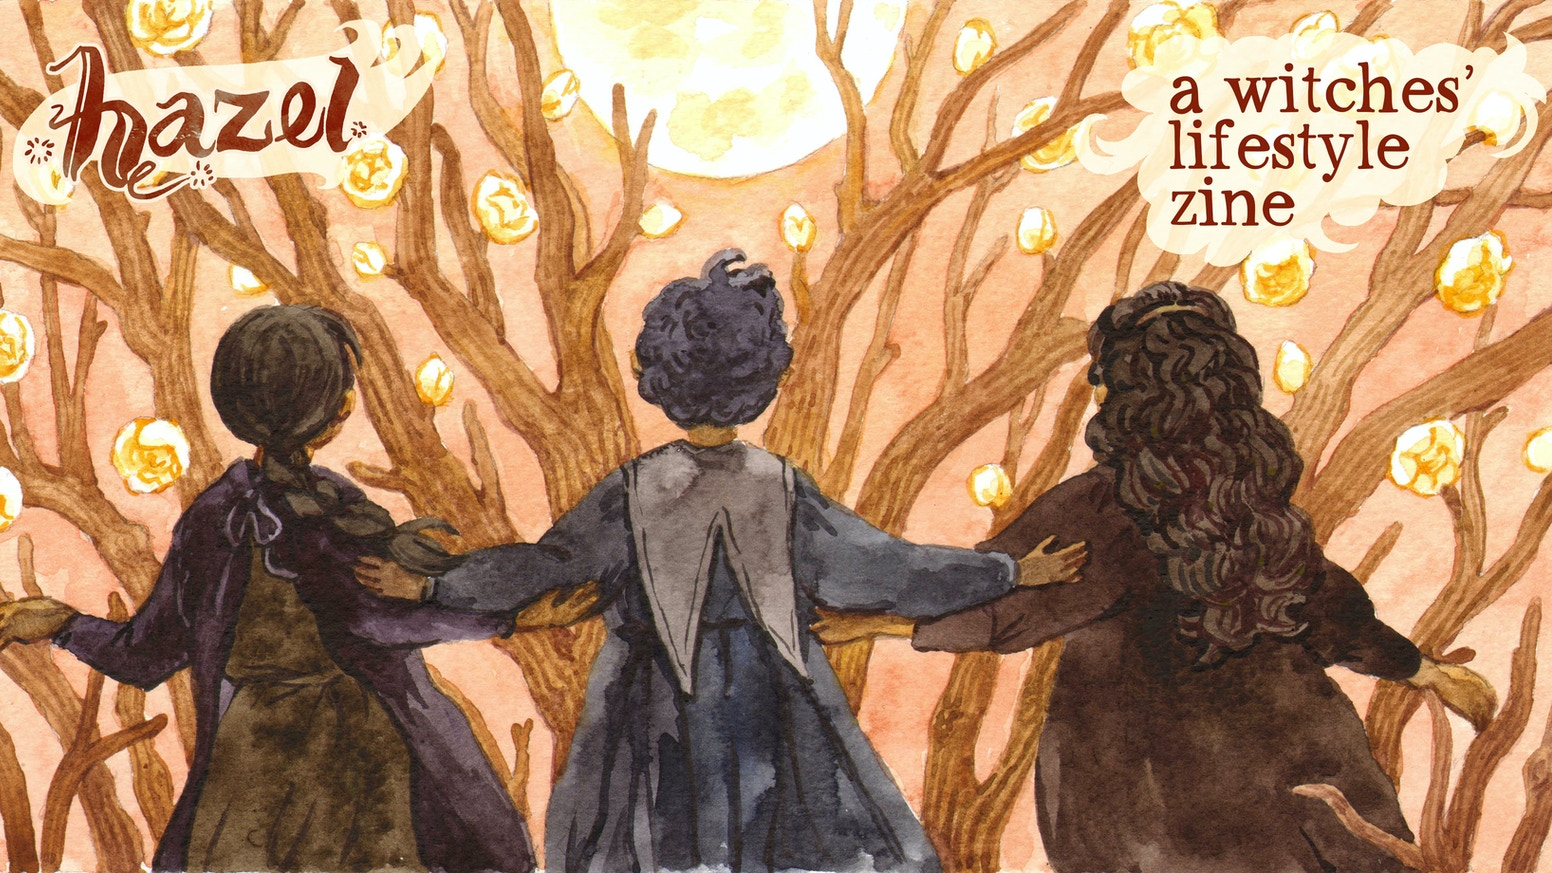 Our witches' lifestyle zines, full of magical comics, illustration, DIYs, and writing, comes into its fifth and final issue.